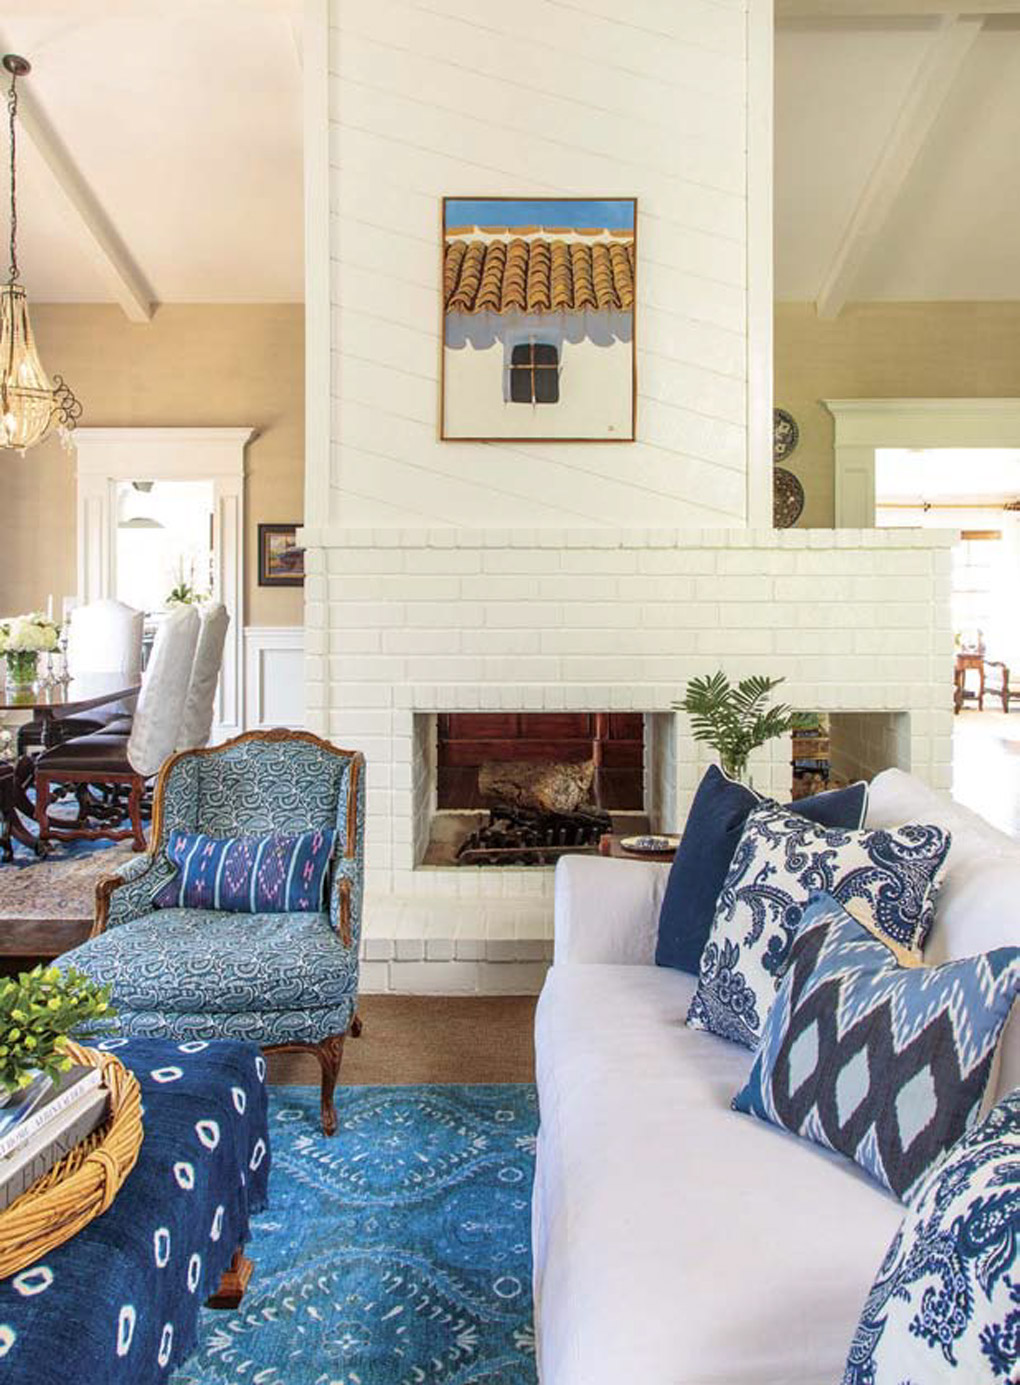 White, brick, walk-around fireplace, separating the dining from another seating area with blue rug, ottomoman and throw pillows accenting the white furniture.